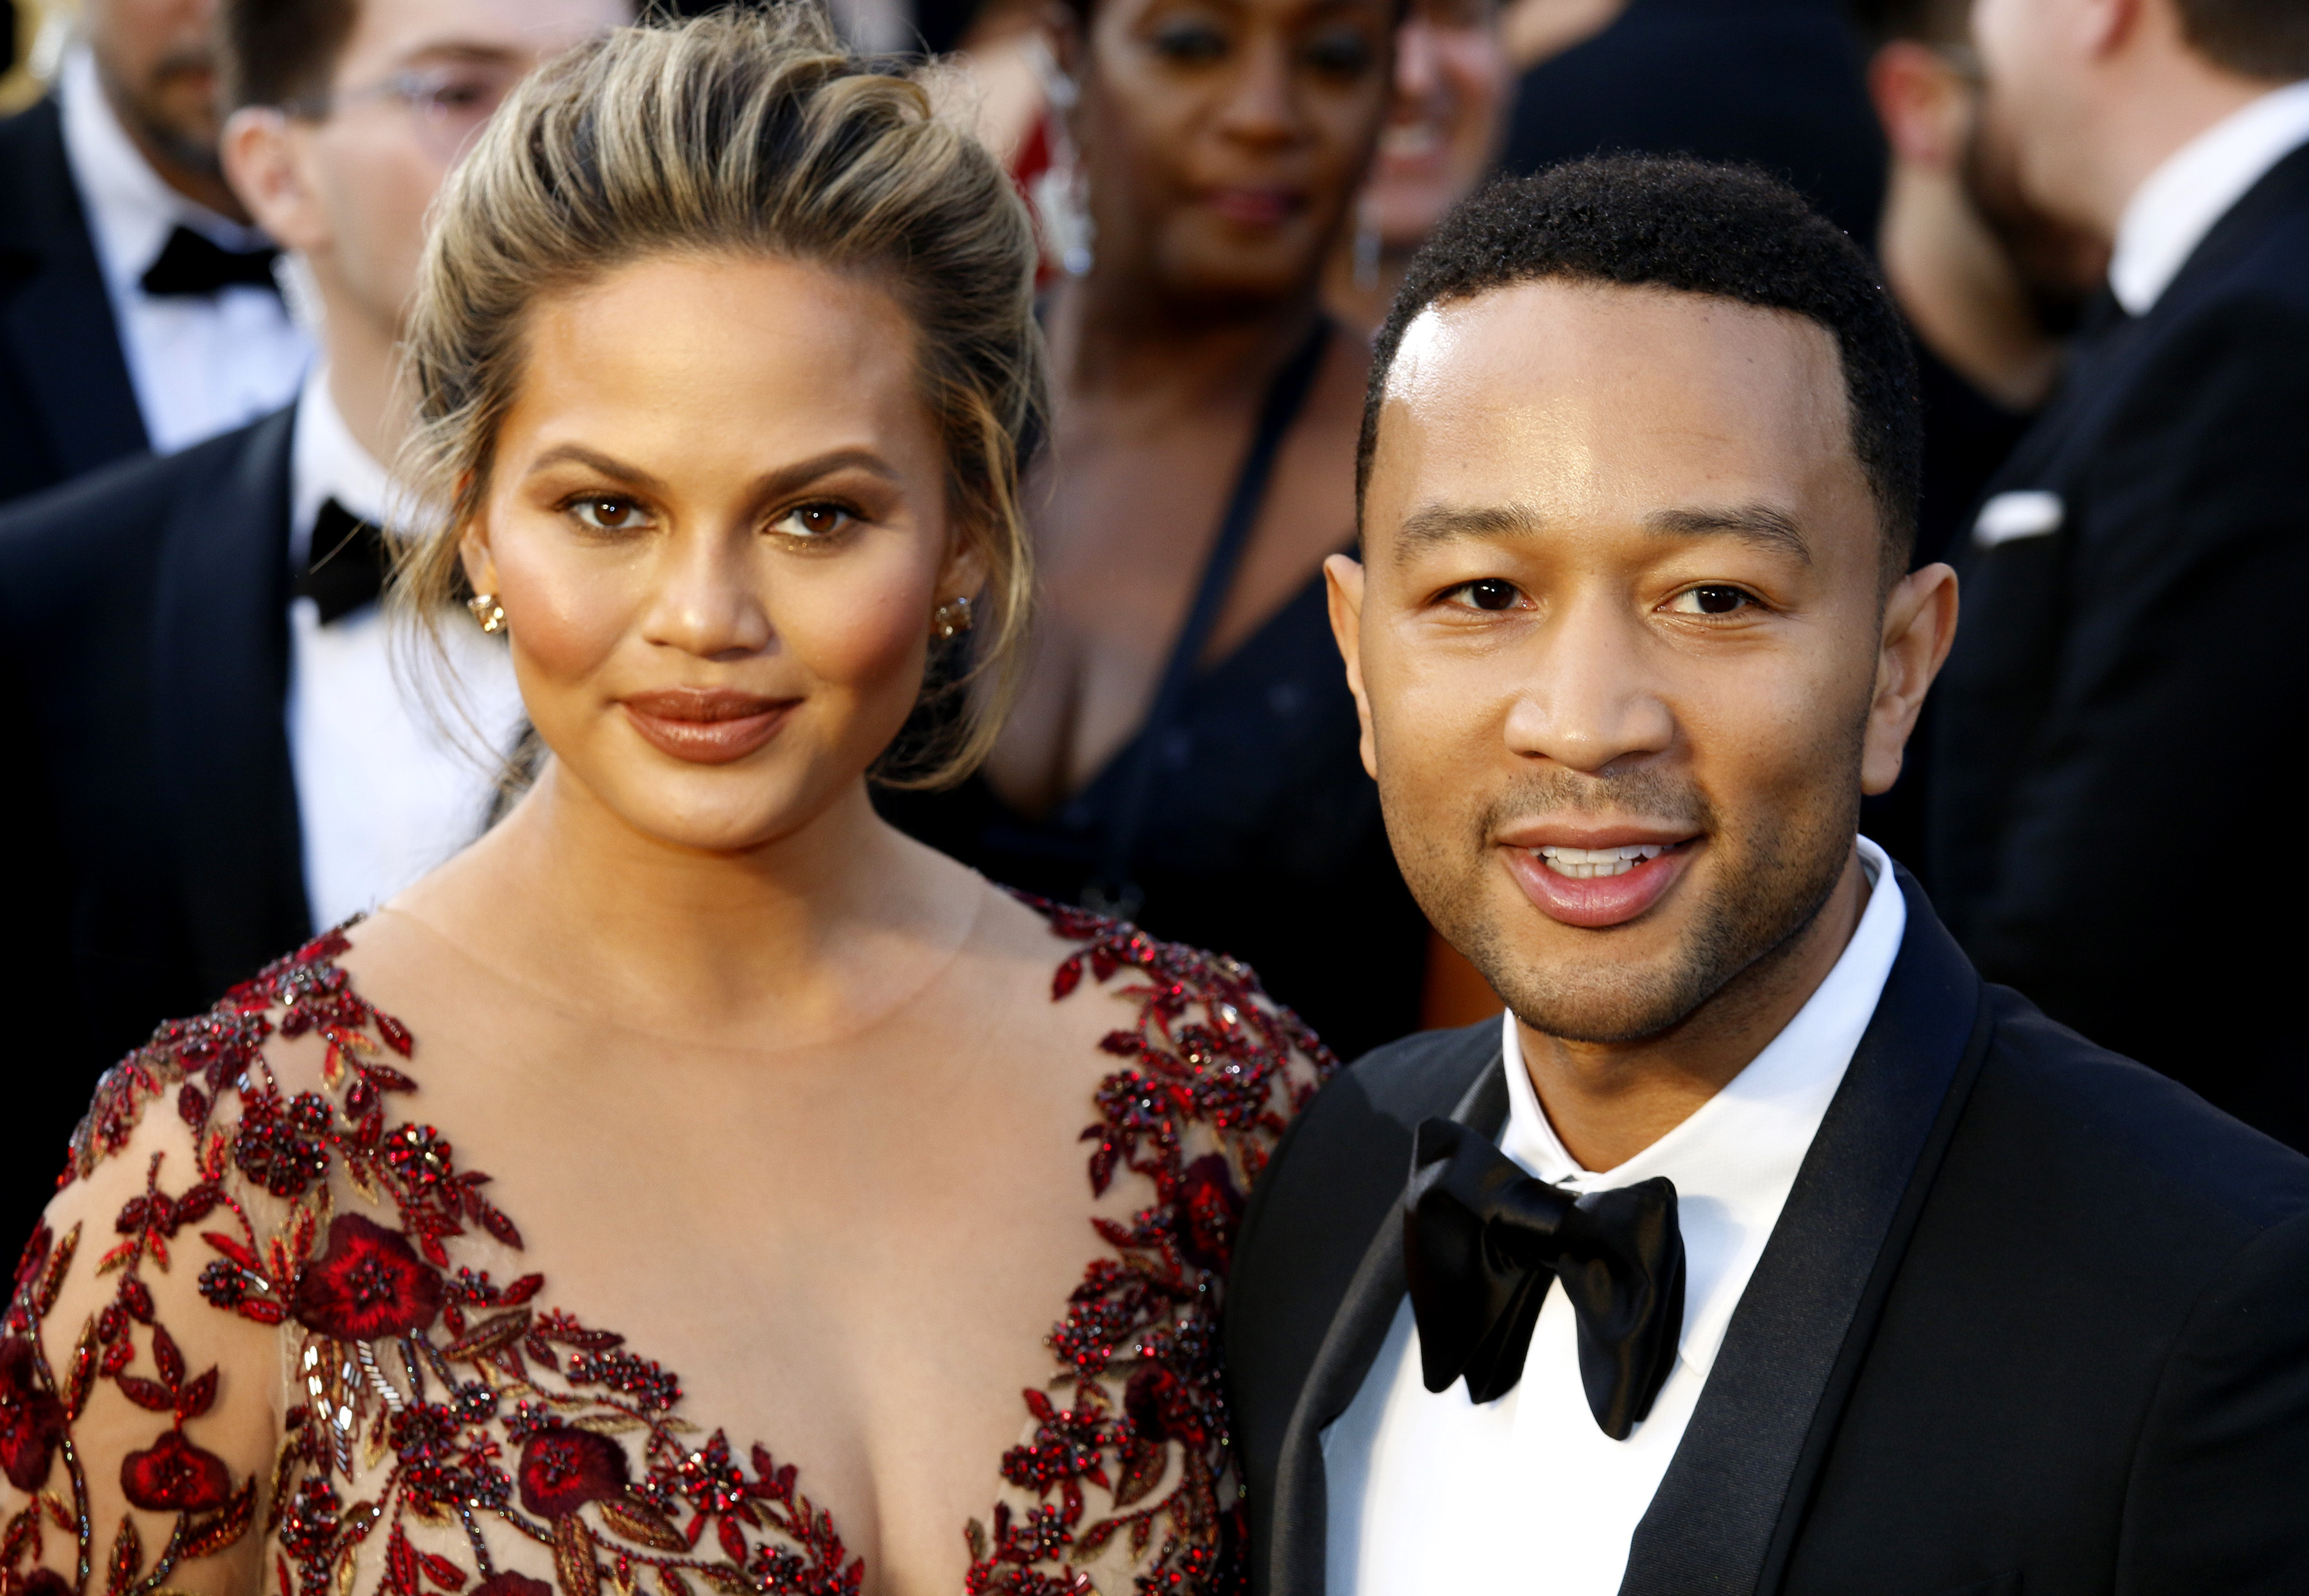 I Call Bullsh*t: Chrissy Teigen Claims to be Friends With Her Husband's Exes